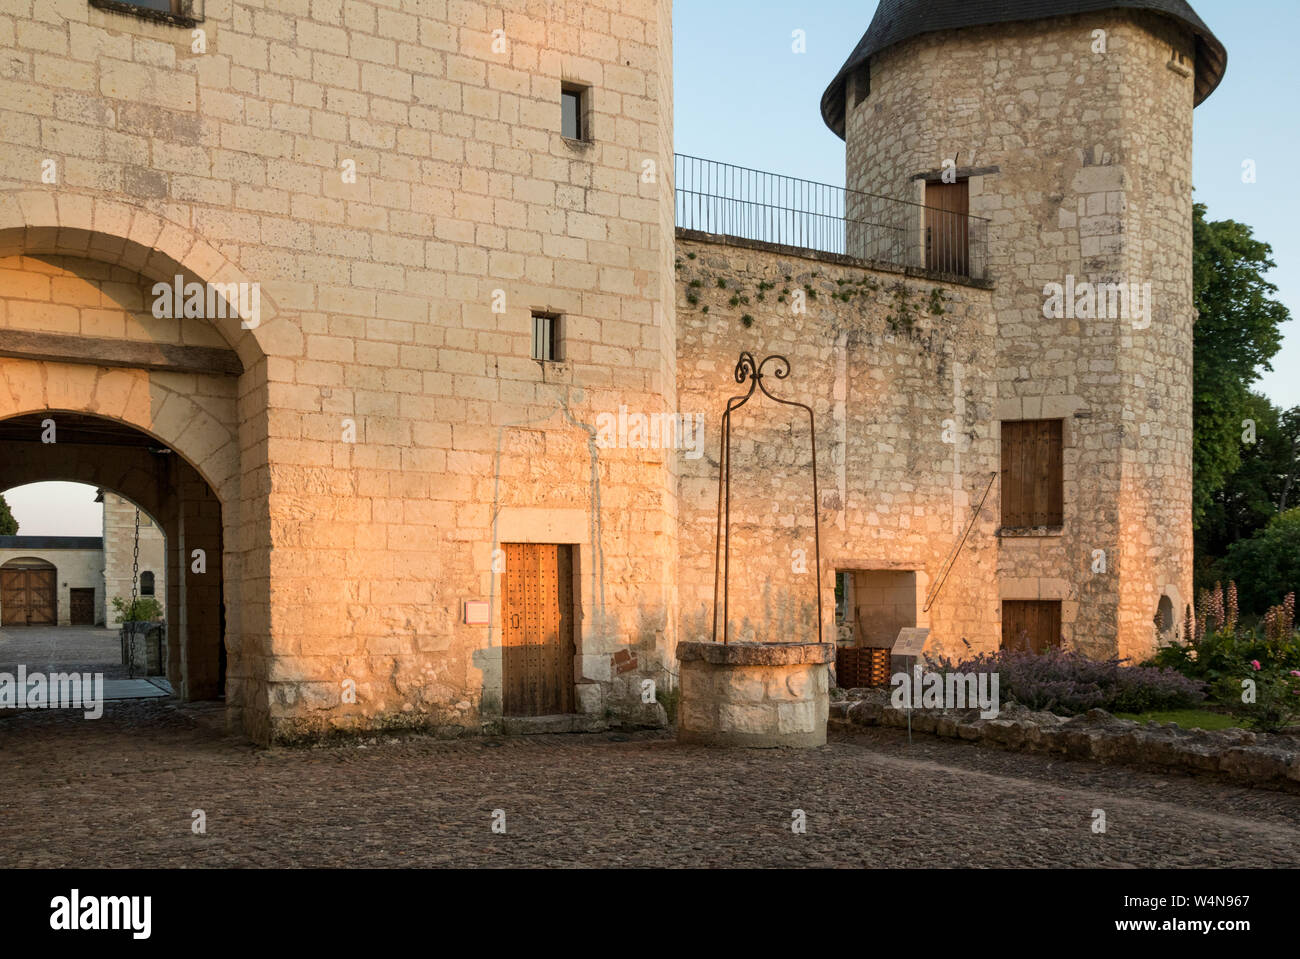 The evening sun lighting up the inner courtyard walls and old well. Chateau du Rivau, Loire Valley, France Stock Photo